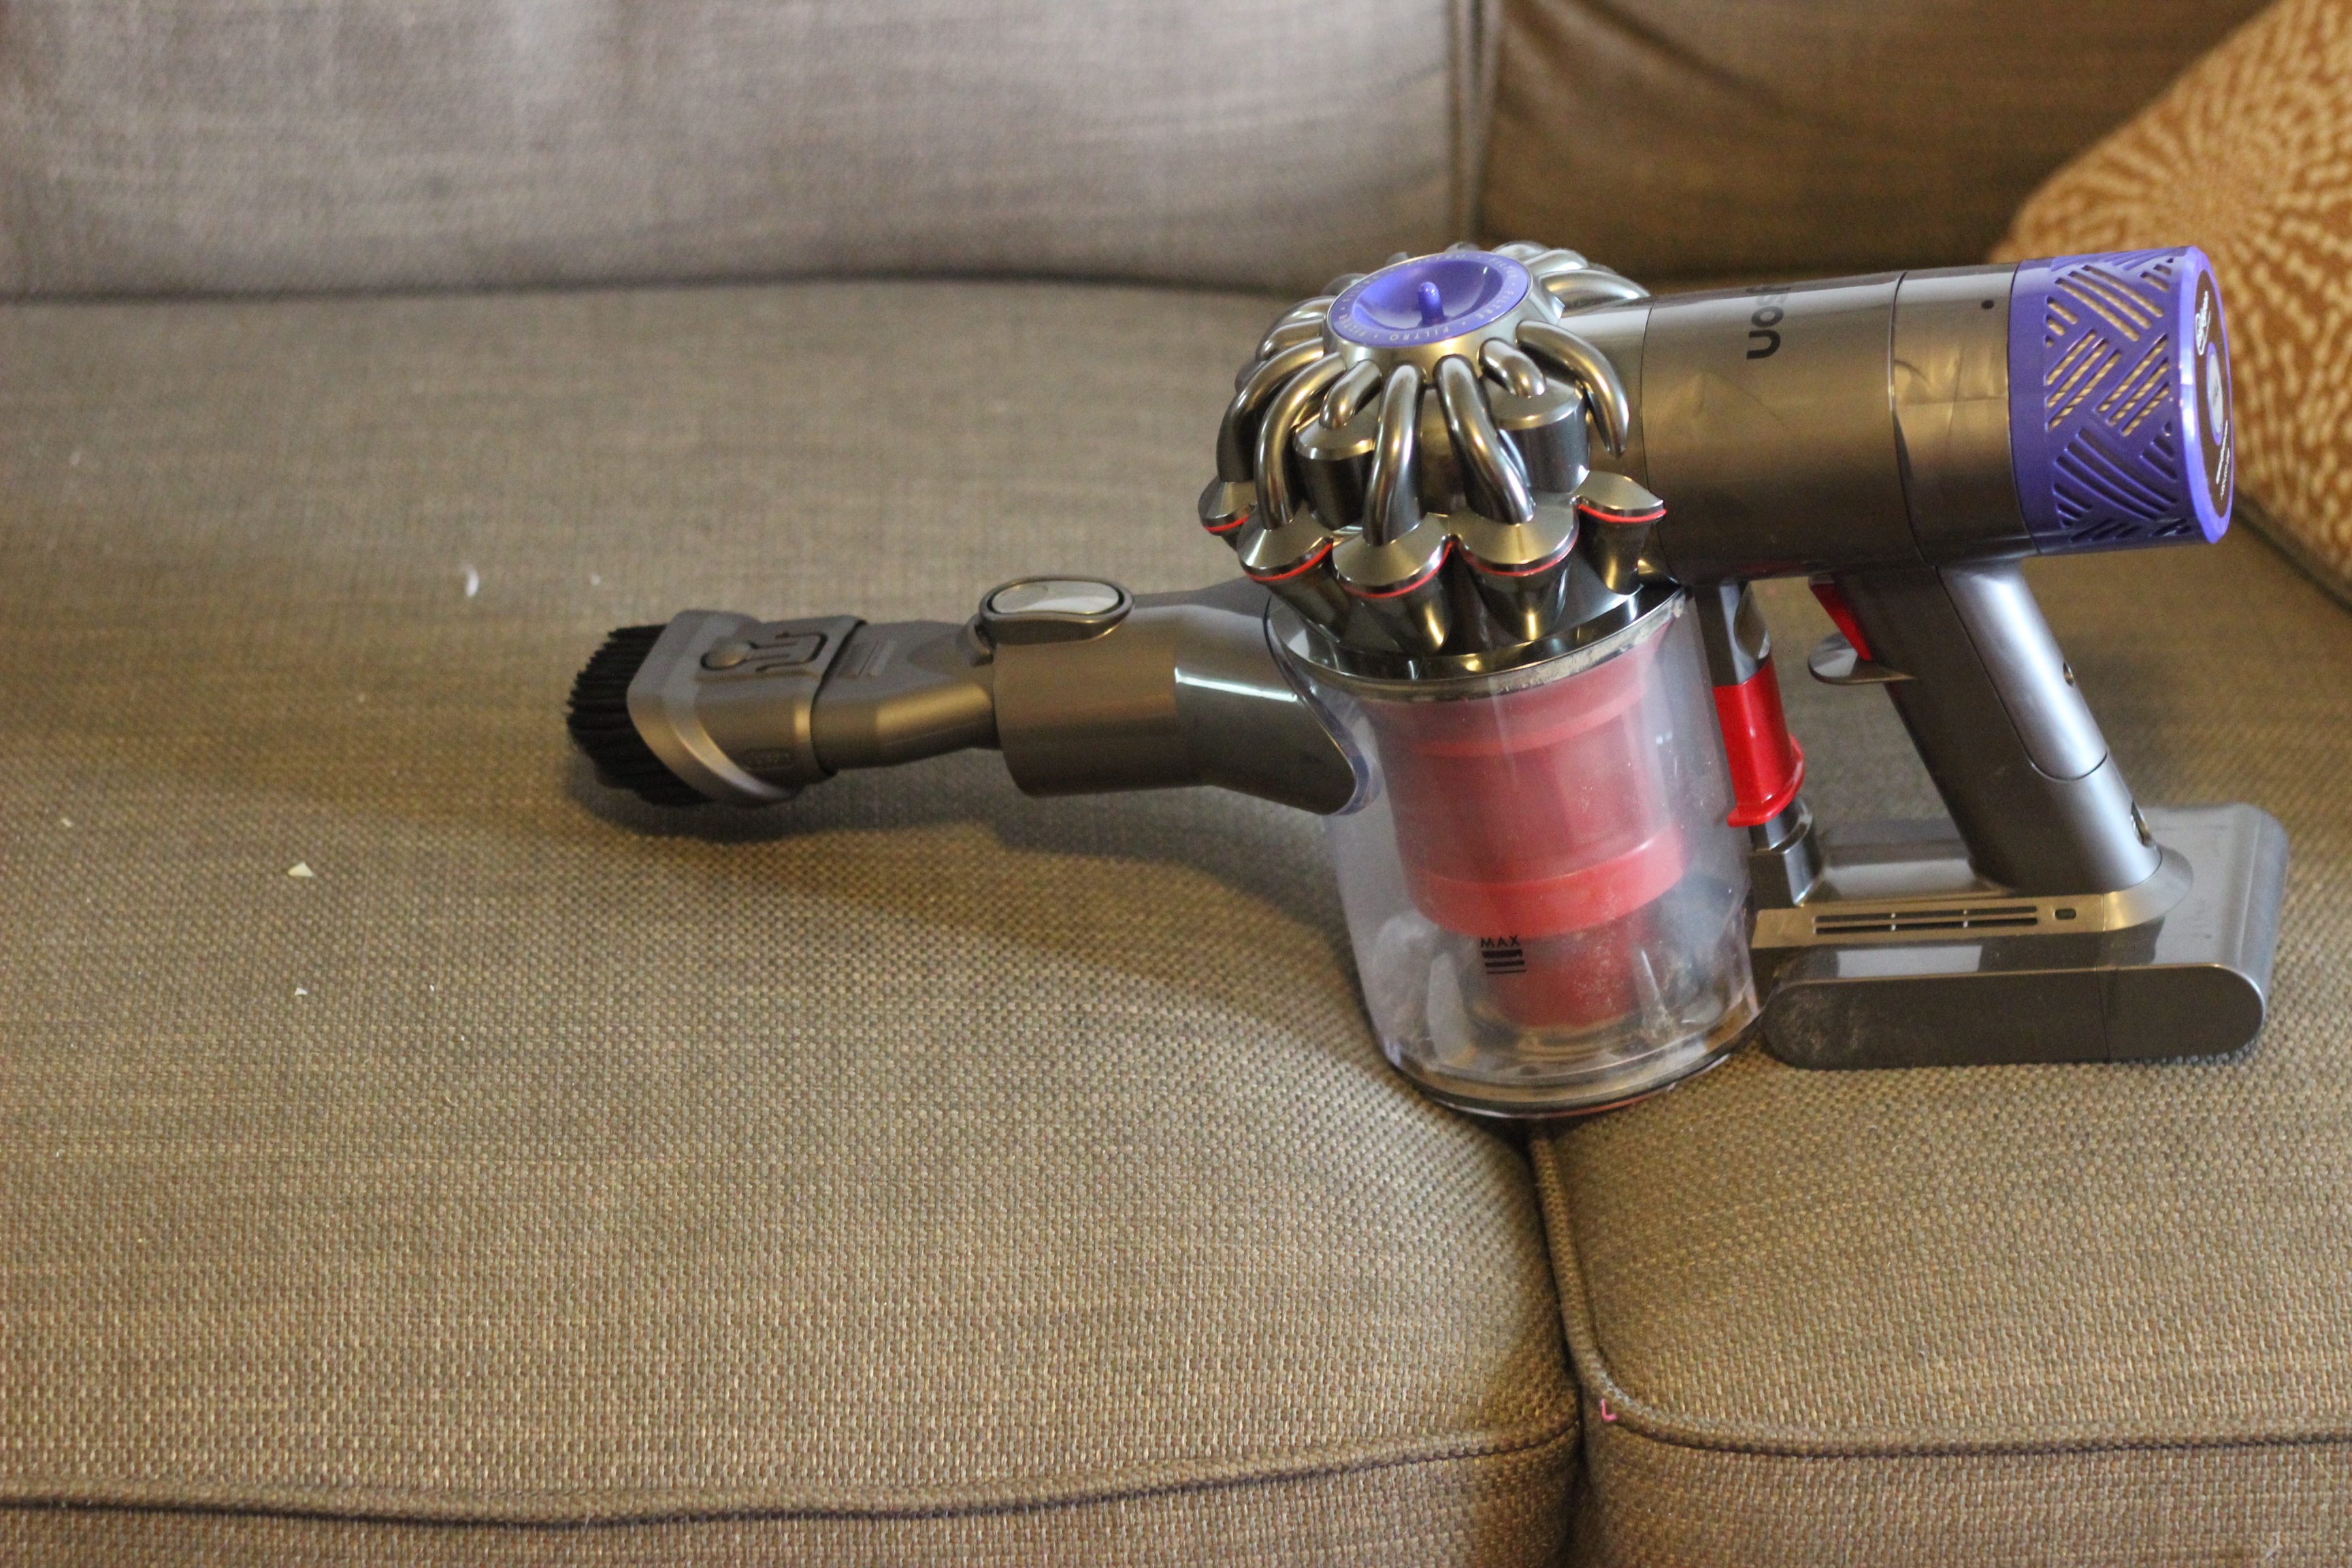 dyson v6 absolute review a powerful cordless vacuum On dyson mini motorized tool review